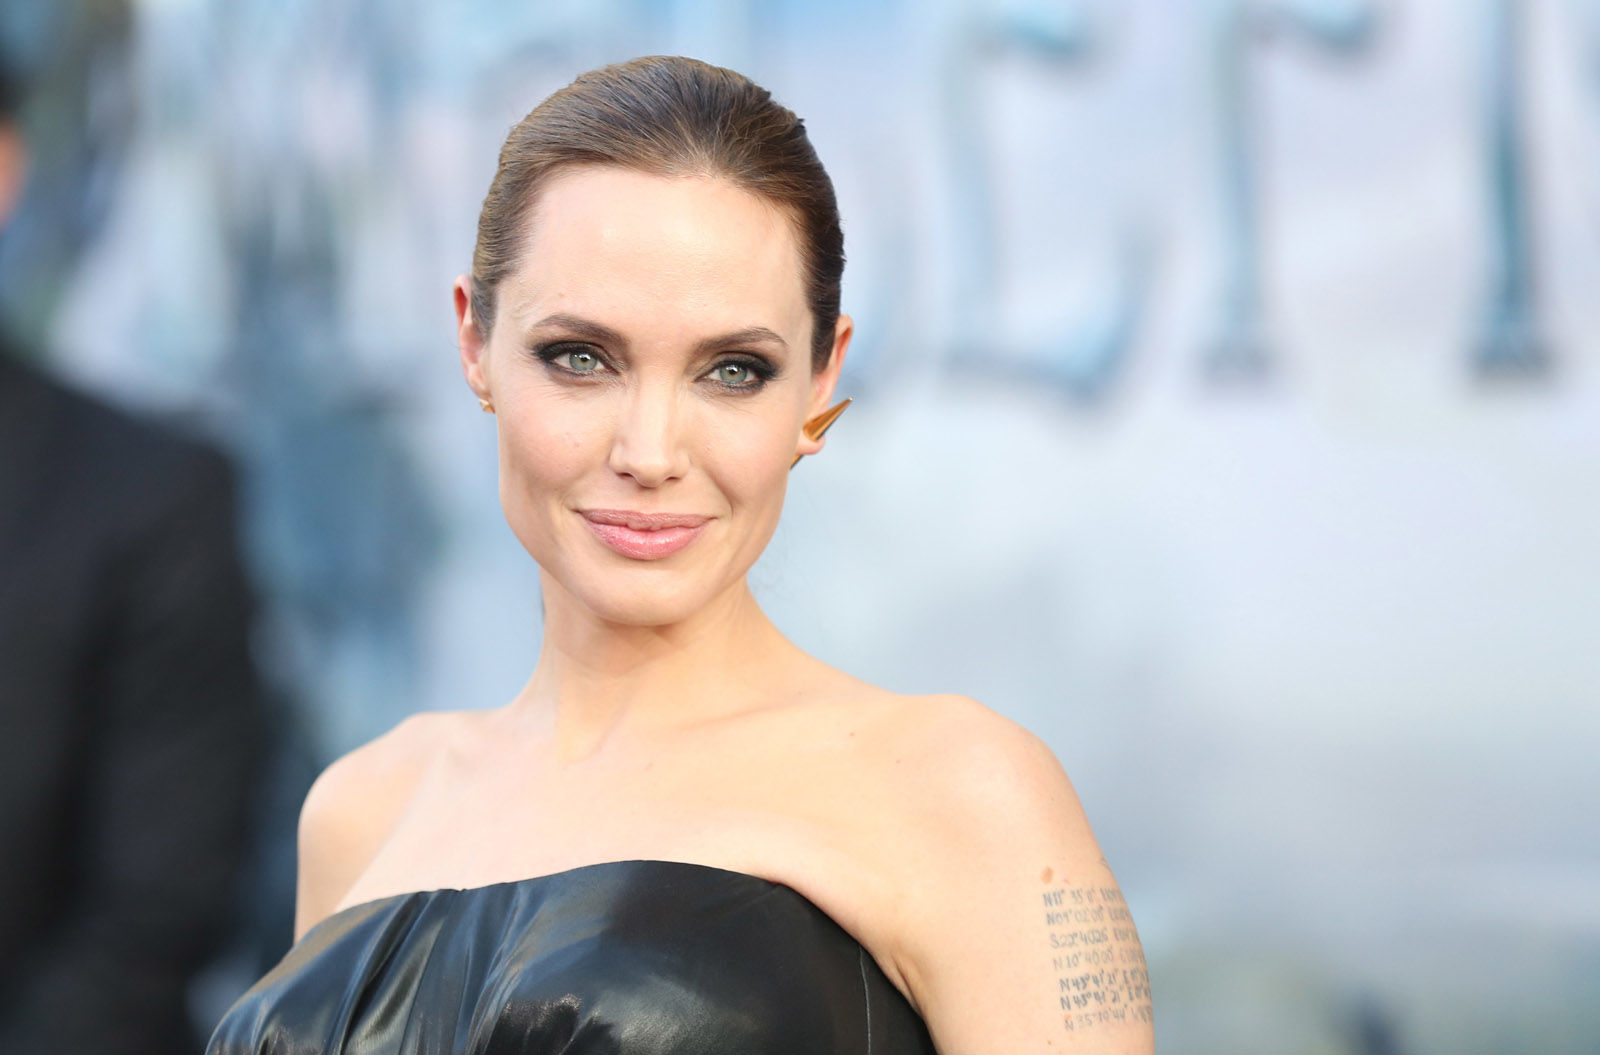 """Angelina Jolie arrives at the world premiere of """"Maleficent"""" at the El Capitan Theatre on Wednesday, May 28, 2014, in Los Angeles.  (Photo by Matt Sayles/Invision/AP)"""